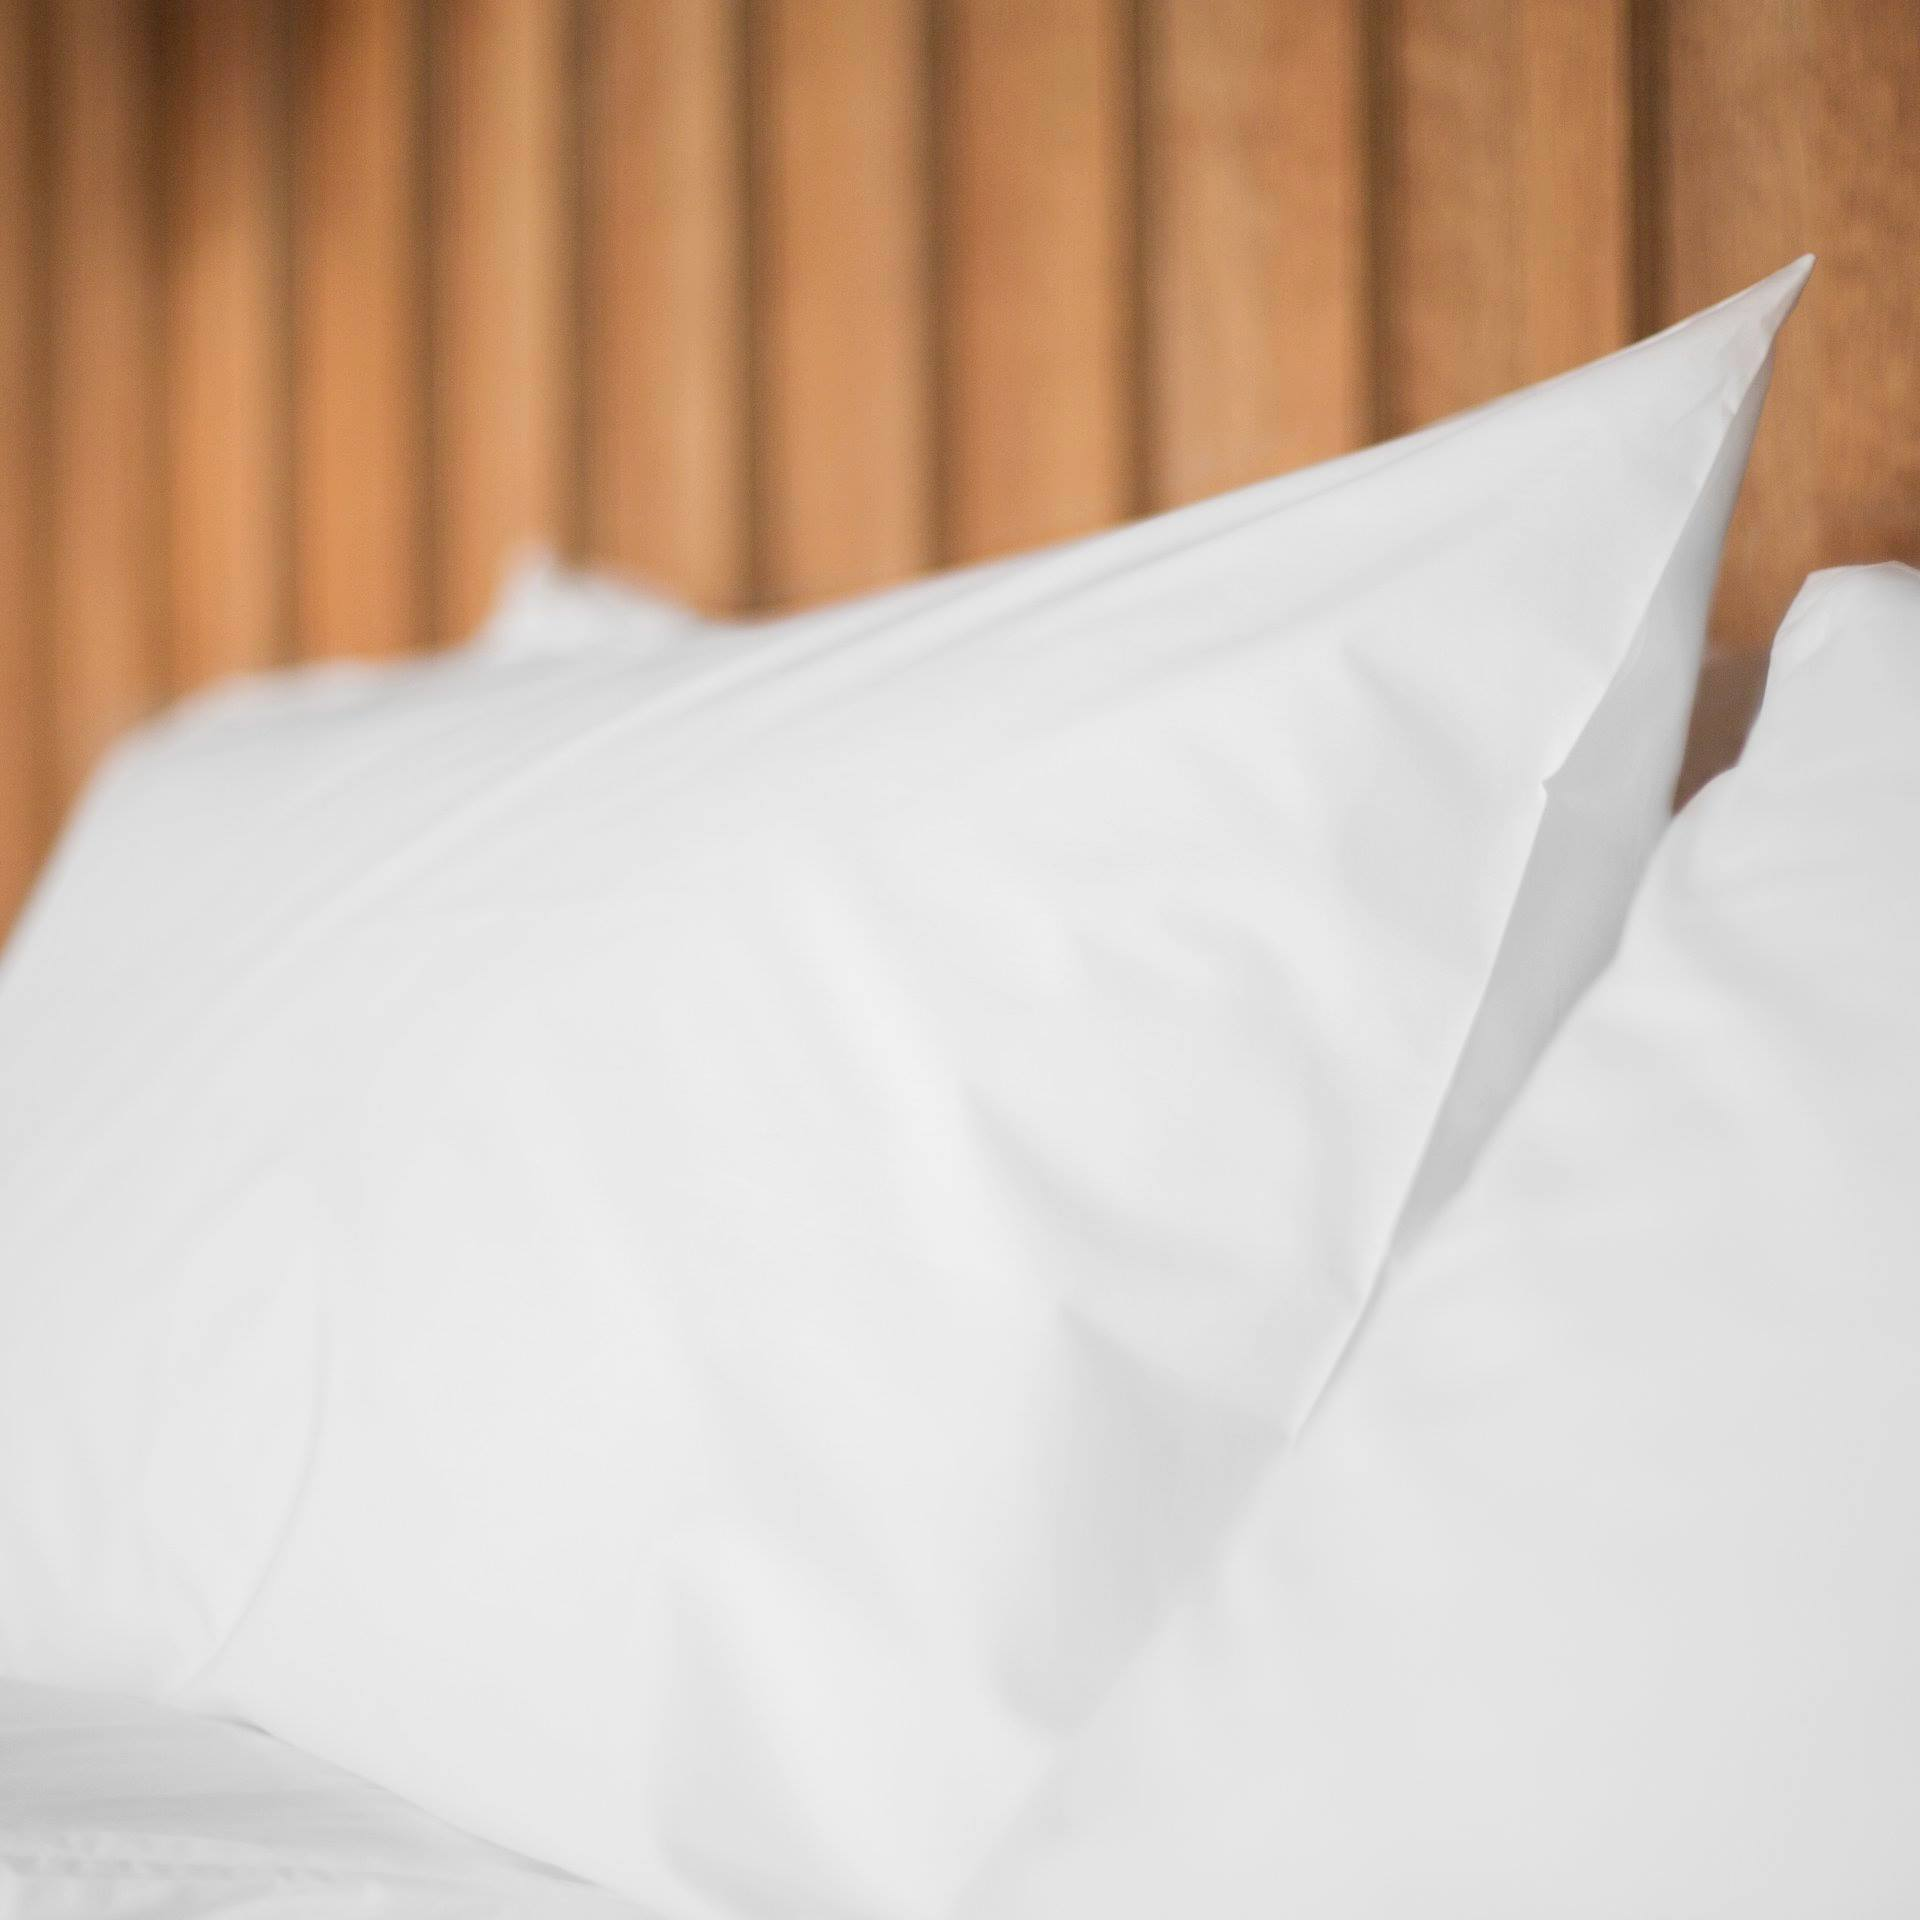 The Classic Hotel Sheet But Bed Sheets Nz The Hotel Sheet